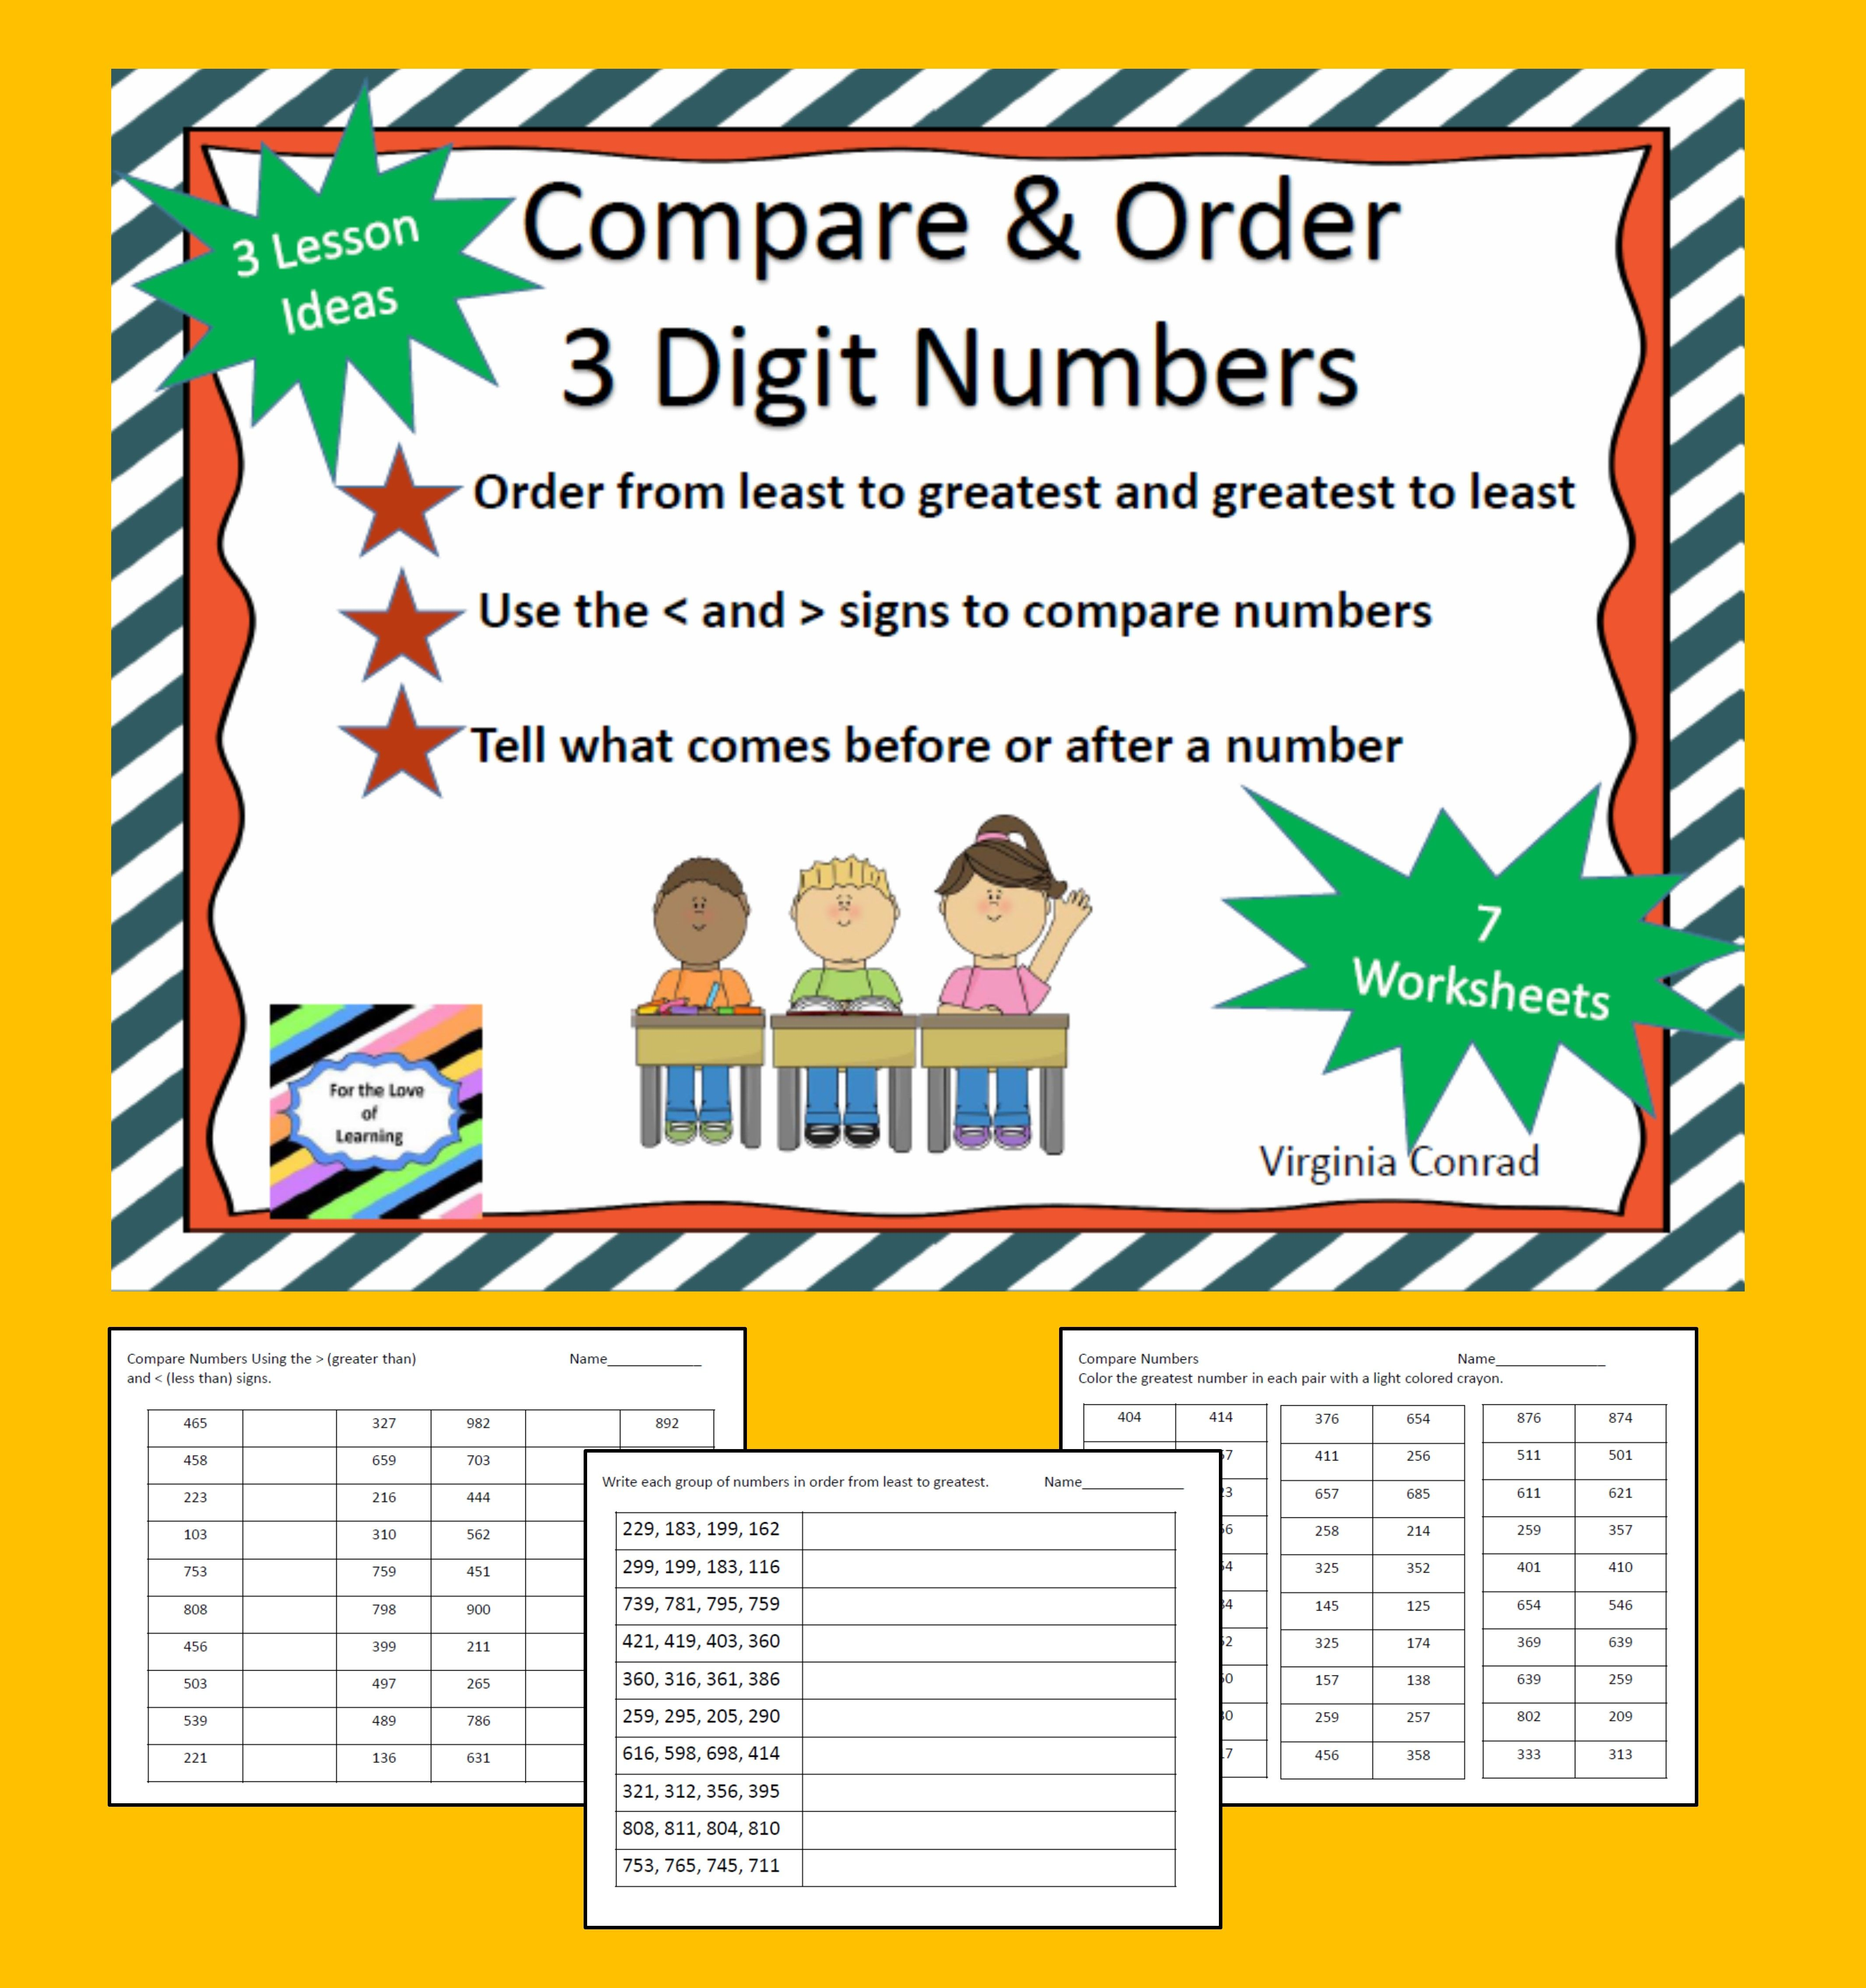 Activities And Worksheets For Comparing And Ordering 3 Digit Numbers Teaching Third Grade Math Third Grade Math Teaching Third Grade Comparing digit numbers worksheets